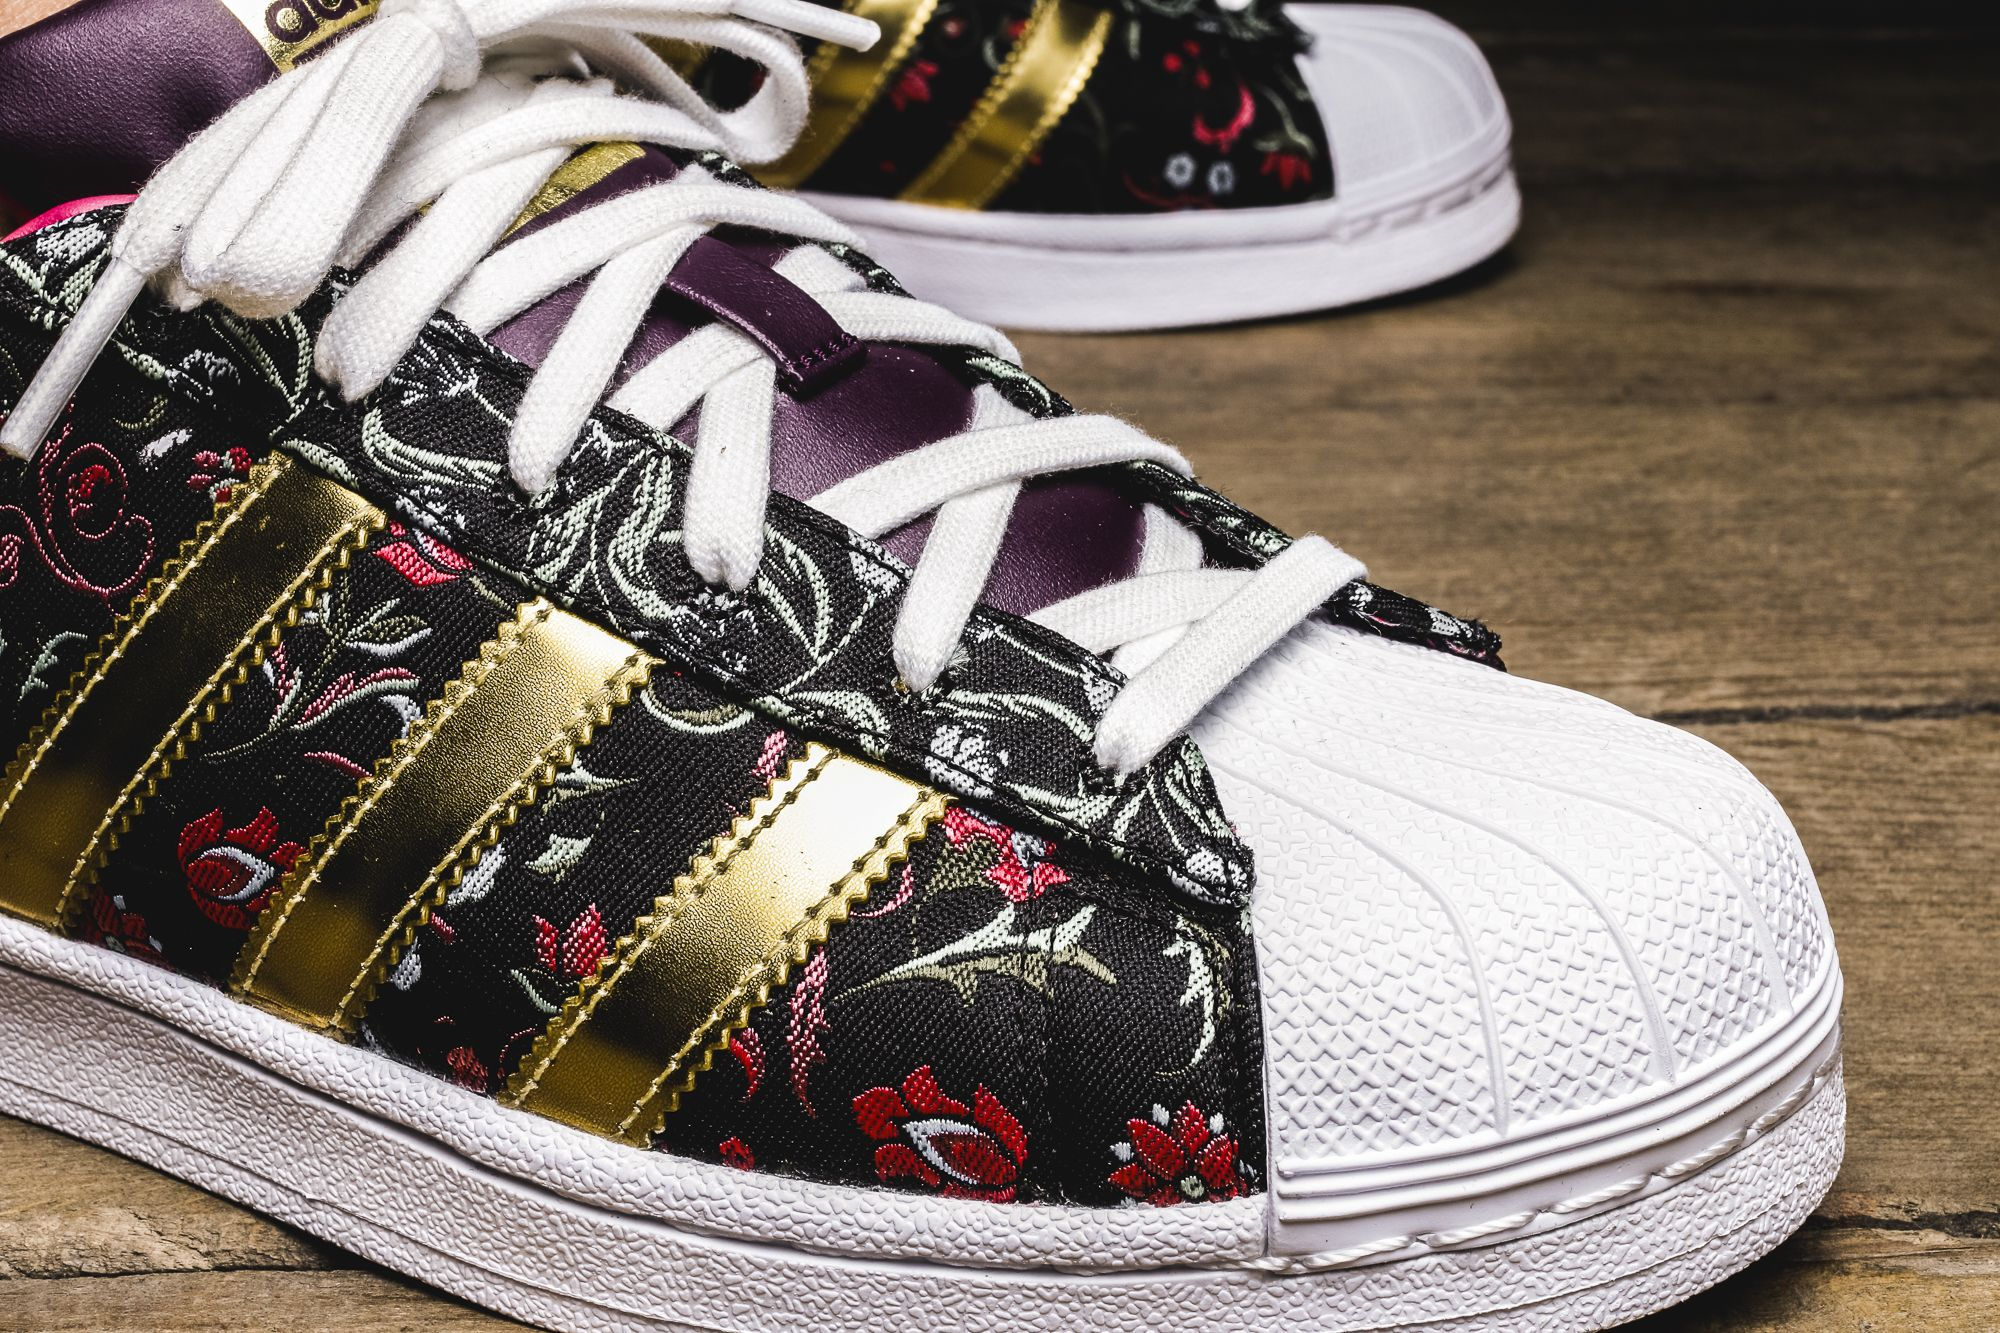 Girls The Adidas Originals Superstar W Is Available At Our Shop Now Eu 37 1 3 41 1 3 90 Madchen Turnschuhe Sneaker Adidas Superstar